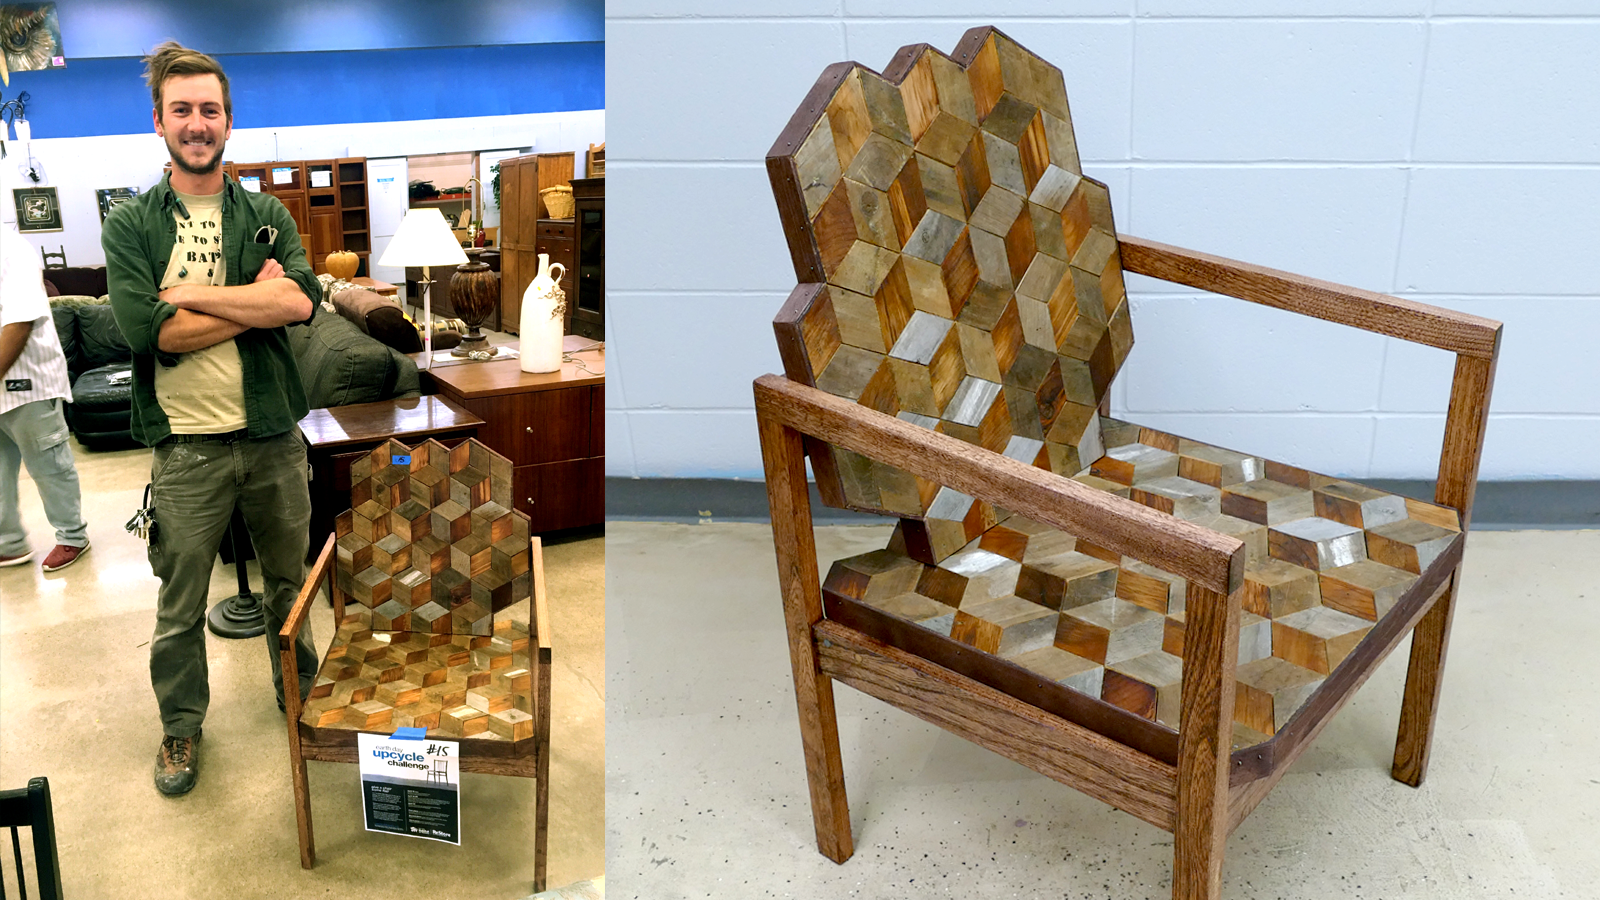 Joey Ford and his winning upcycled chair project